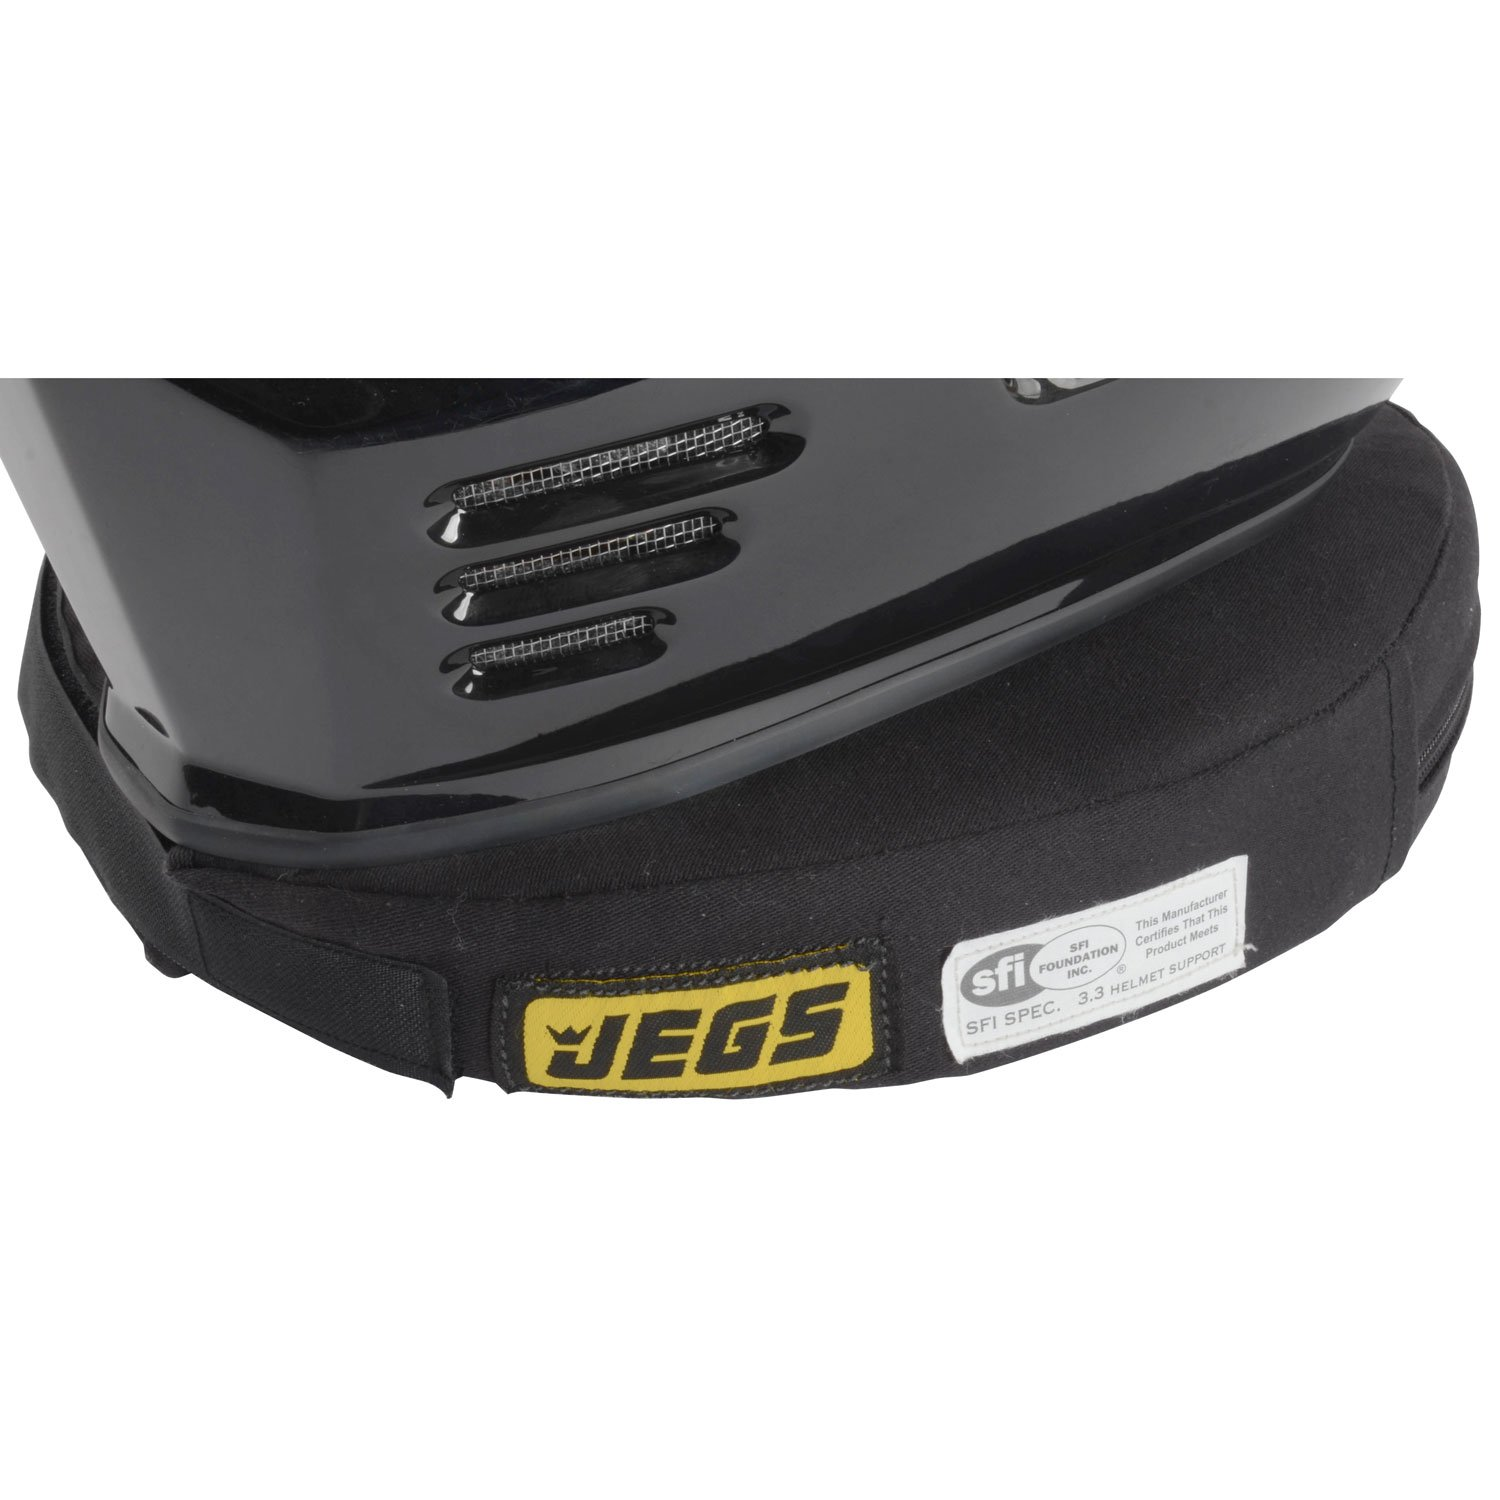 JEGS Performance Products 6040 Neck Support SFI 3.3 Approved Black